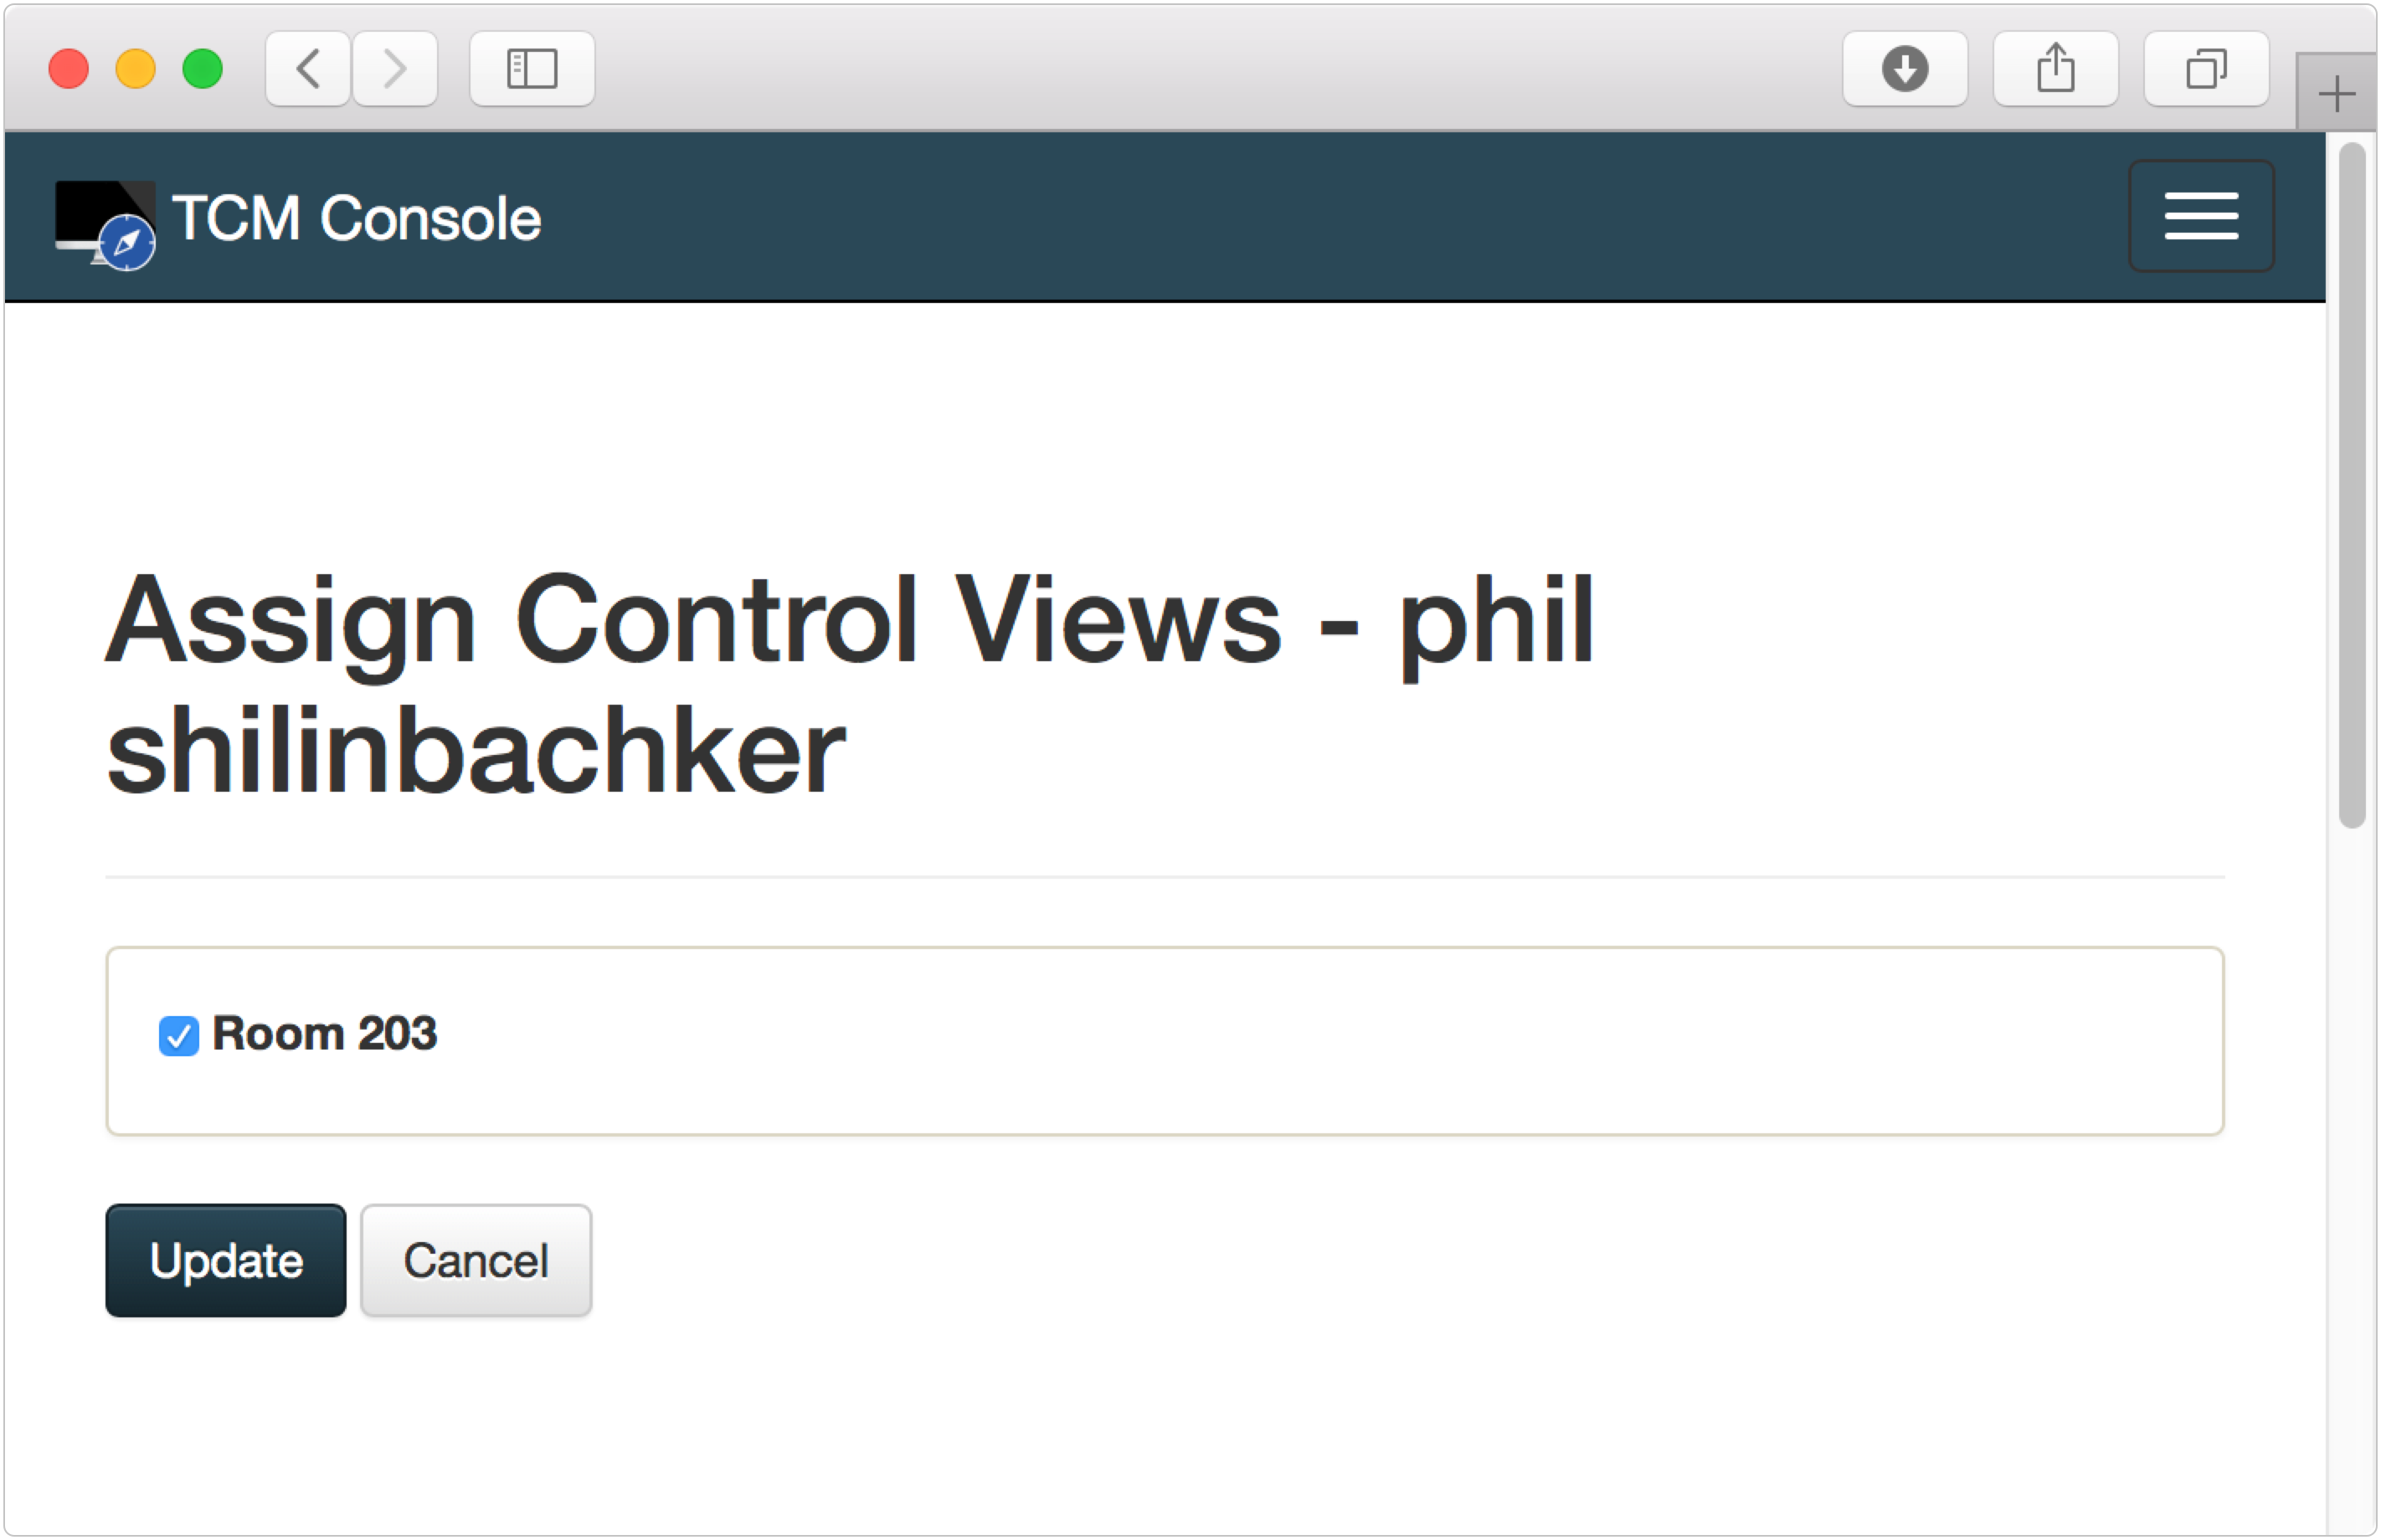 Assigning a Control View